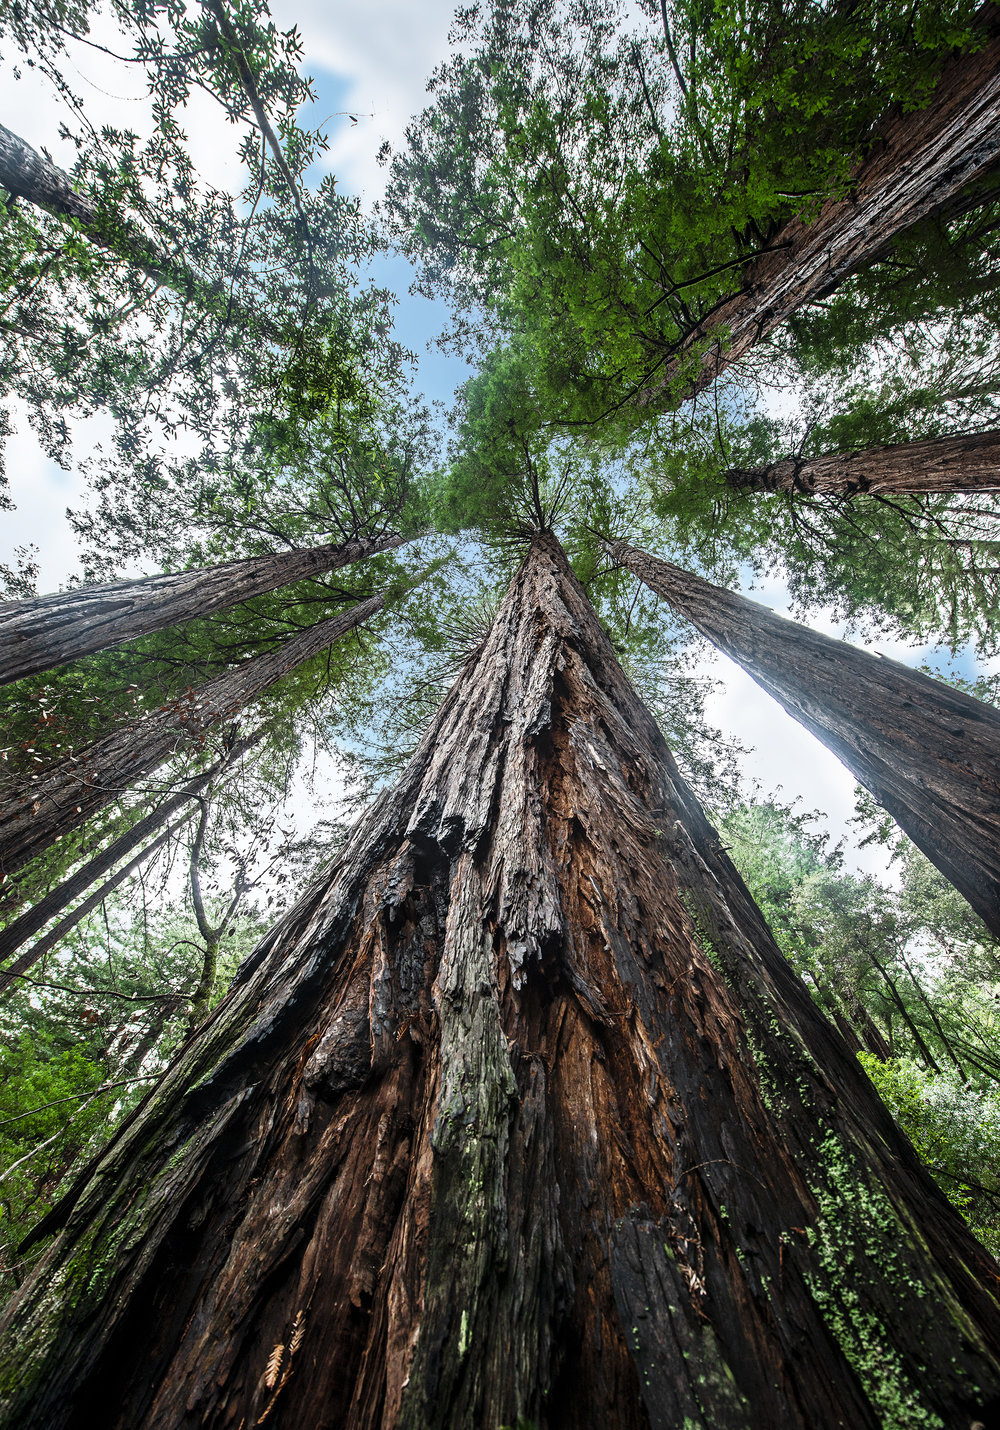 Ah the famous Redwoods. Right outside of San Francisco. This place truly amazed me, I've never felt so small and captivated at the same time. A place of beauty, of growth and history if you ever have the chance to visit them I beg that you take it.